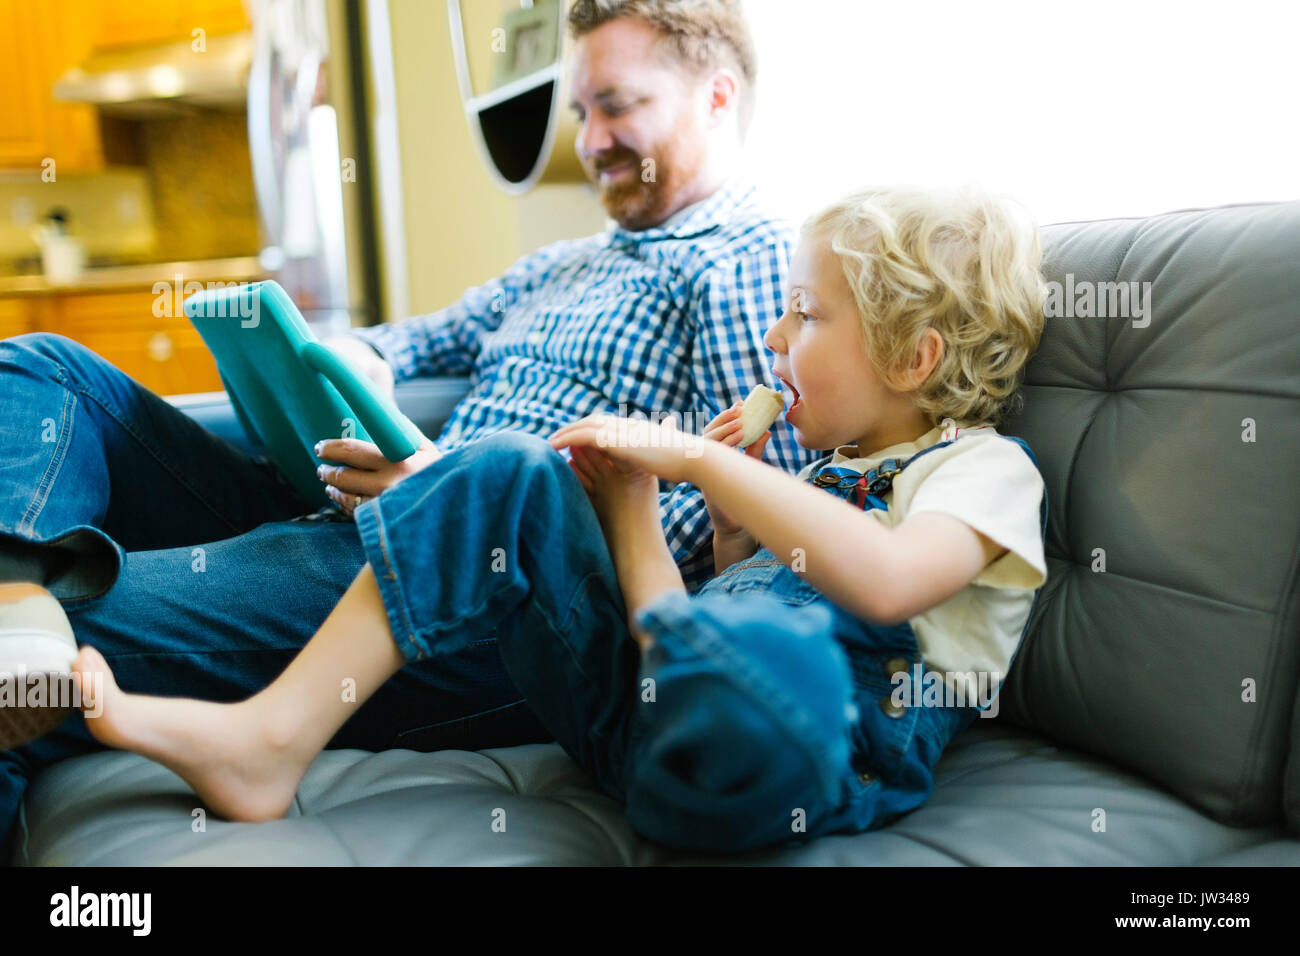 Boy (4-5) and man using digital tablet on sofa in living room - Stock Image